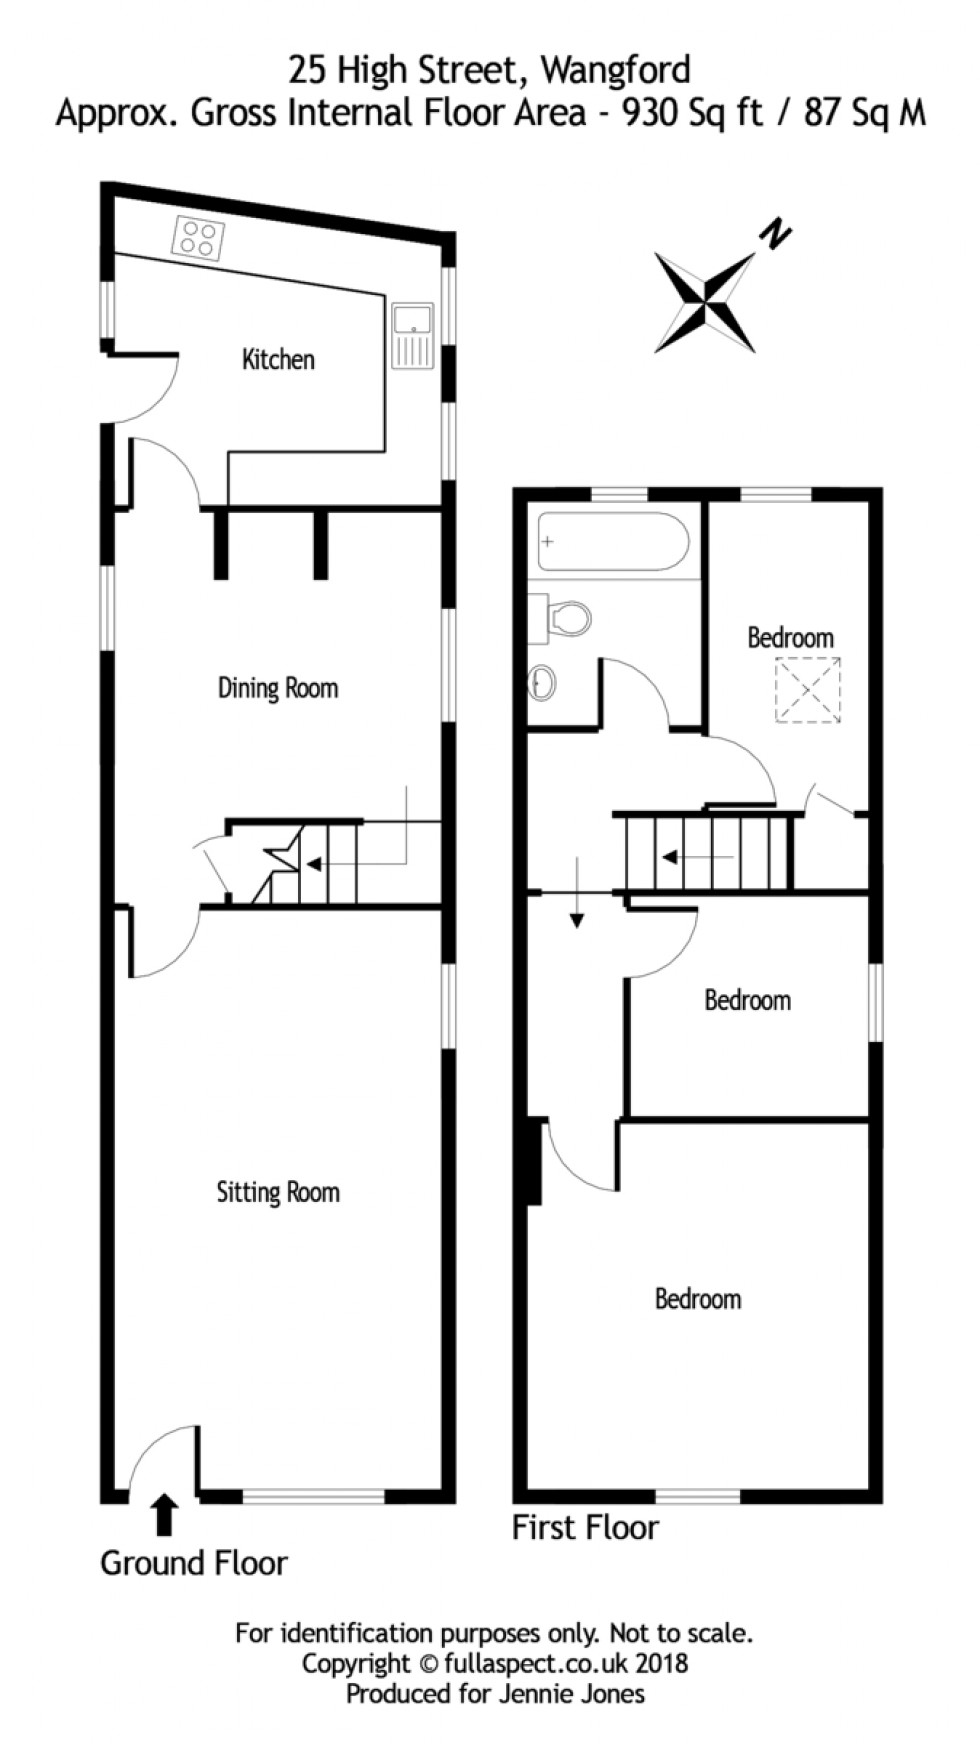 Floorplan for 25 High Street, Wangford